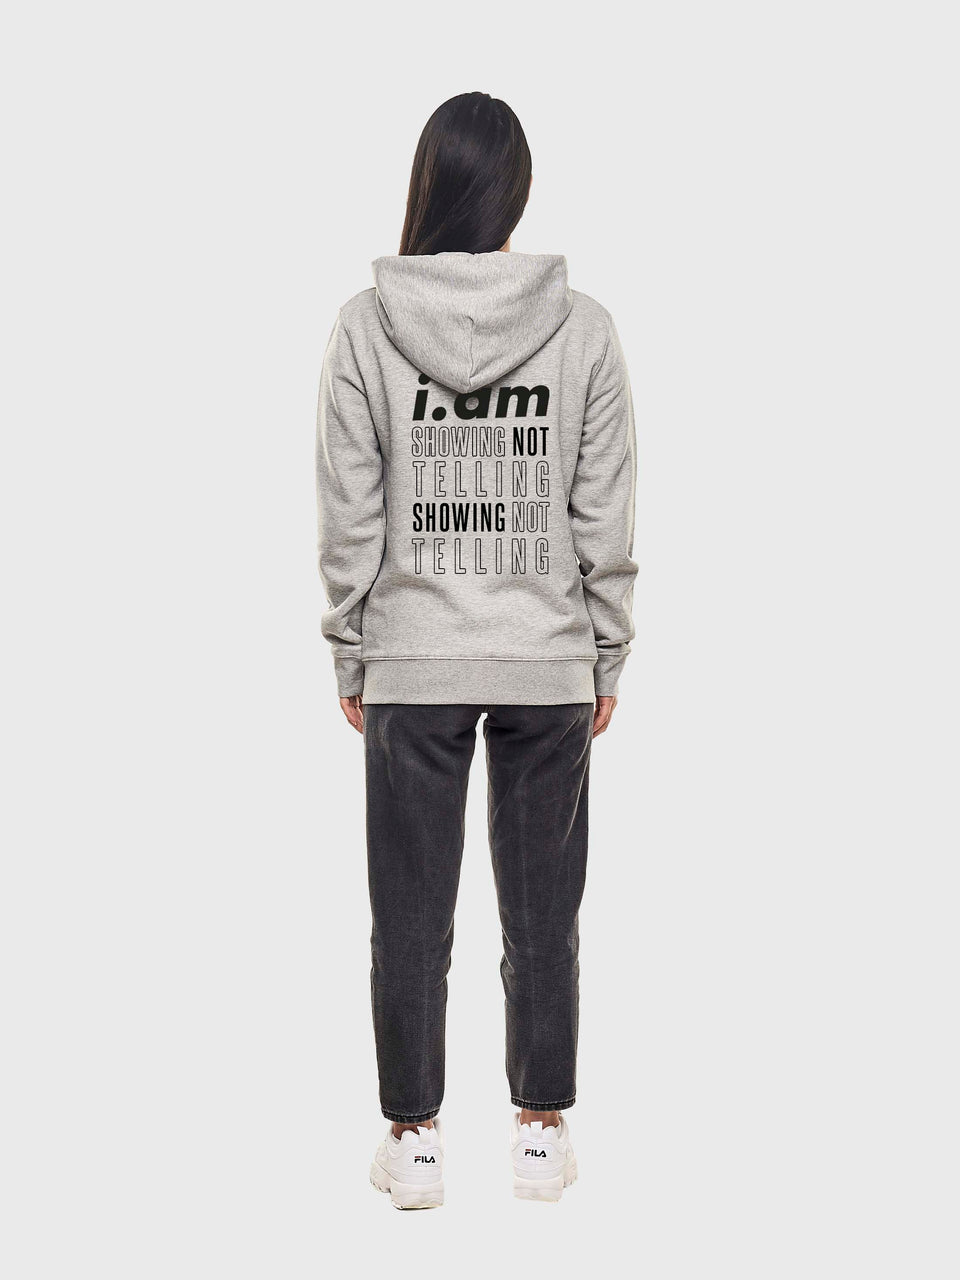 Showing not telling - Grey - Unisex zip up hoodie